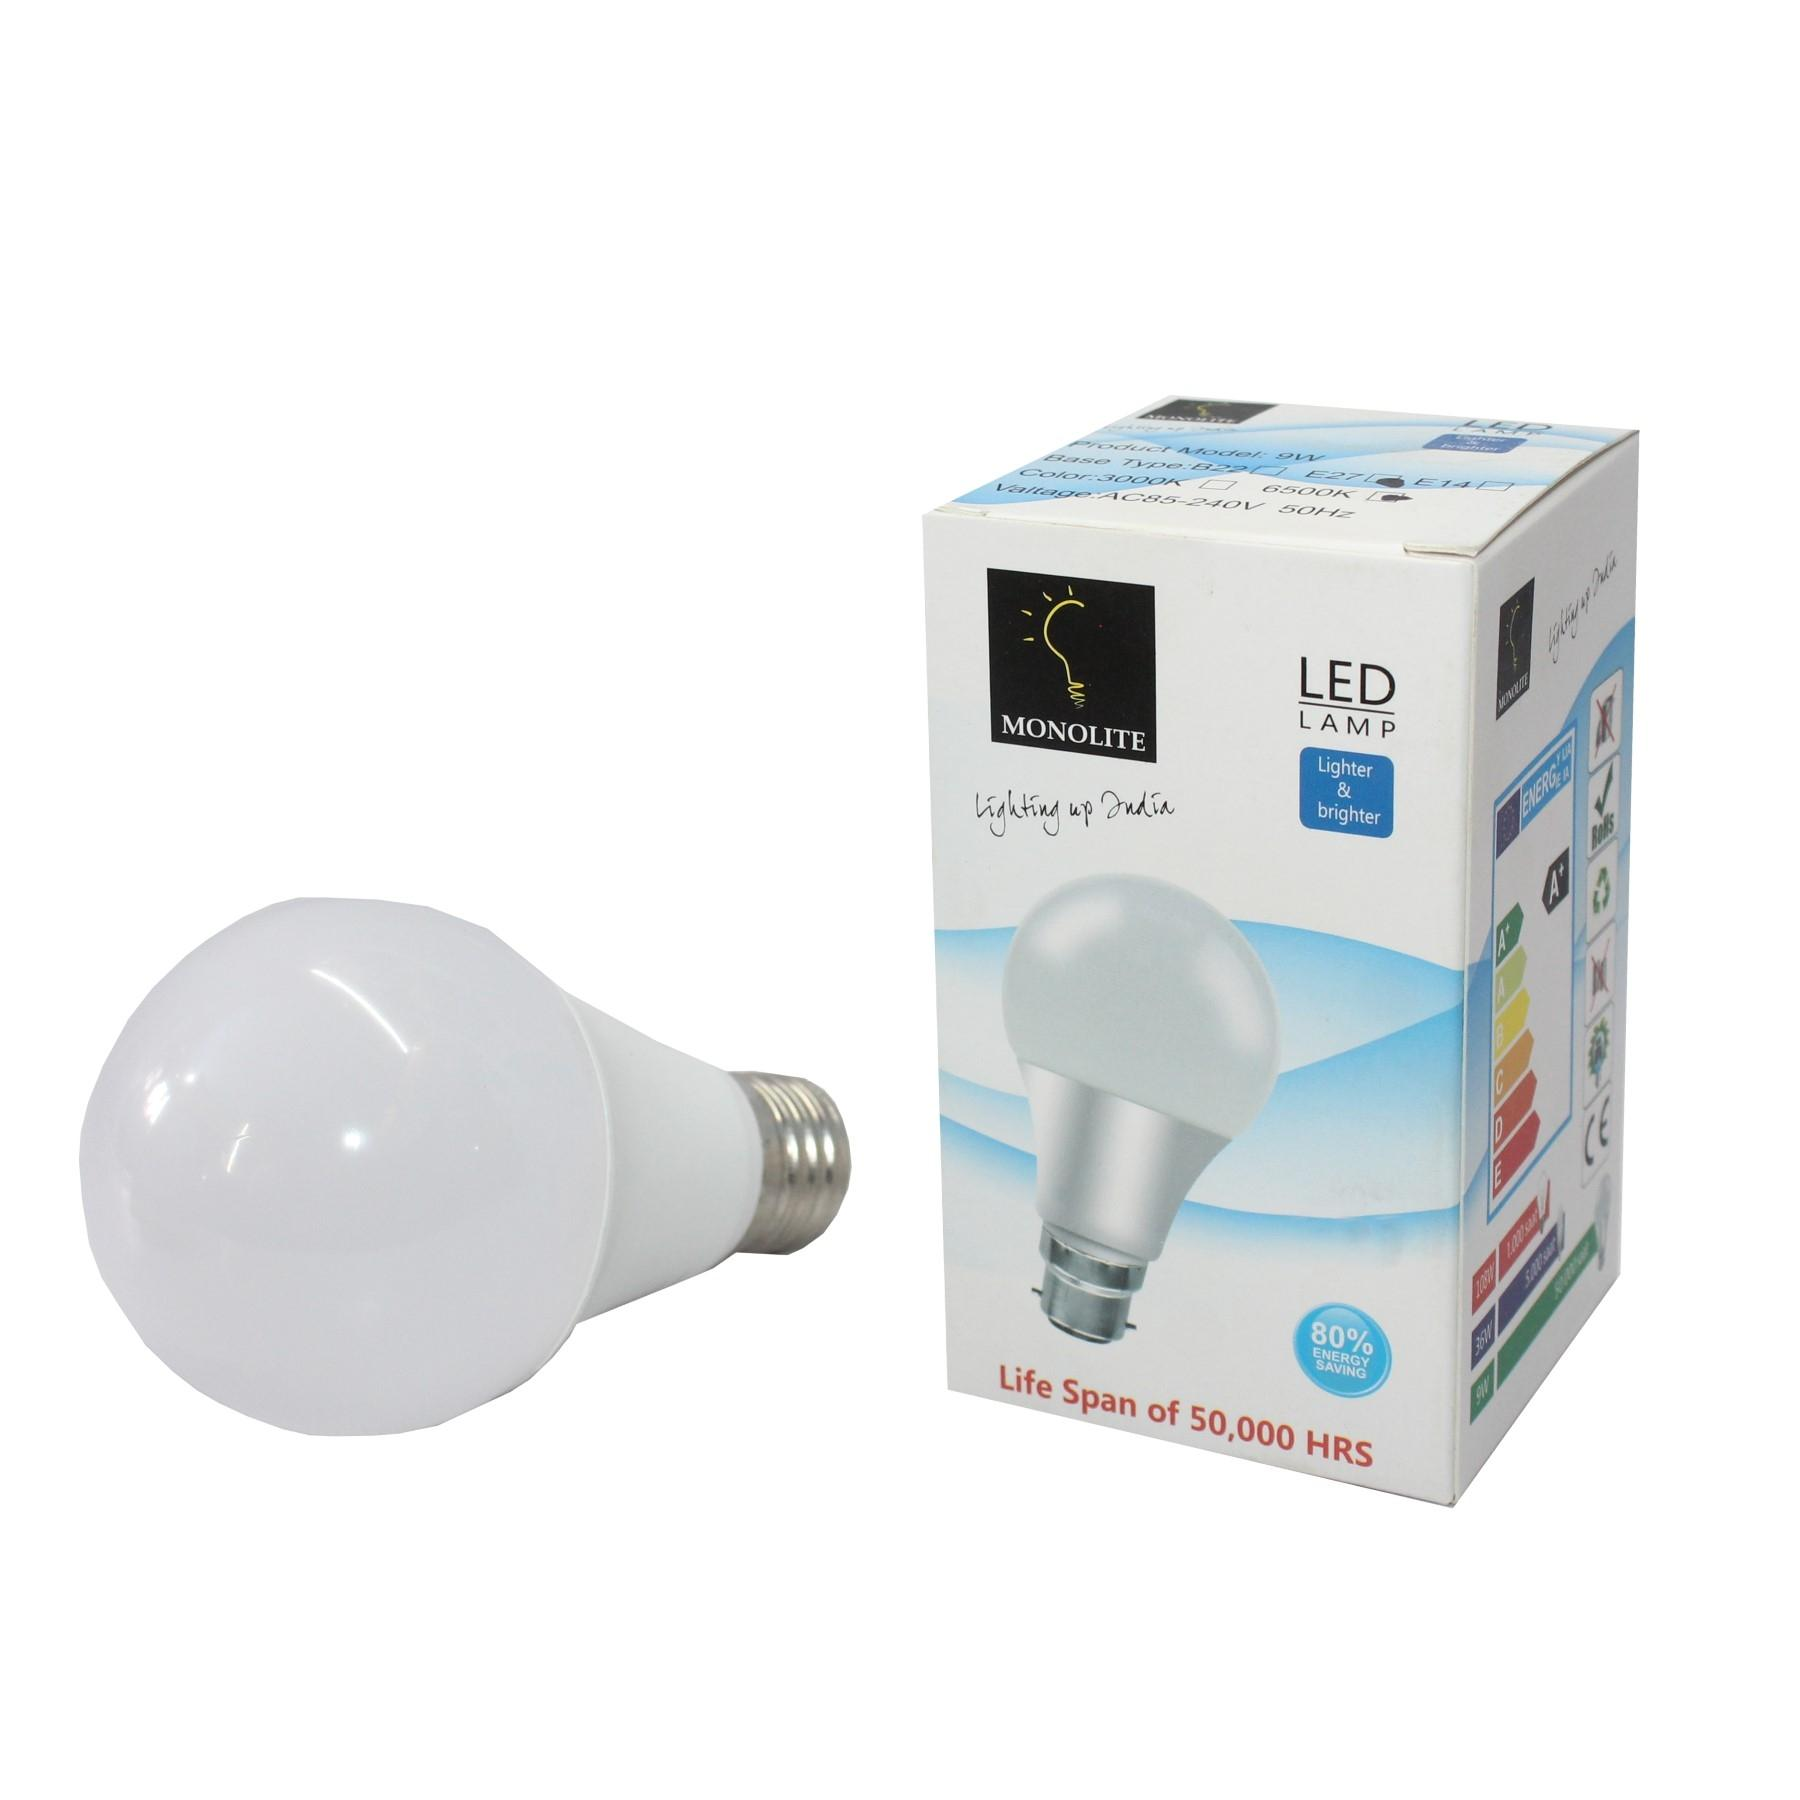 5 Watt Led Buy Monolite Megaslim Home Light Bulbs At Best Prices Online In